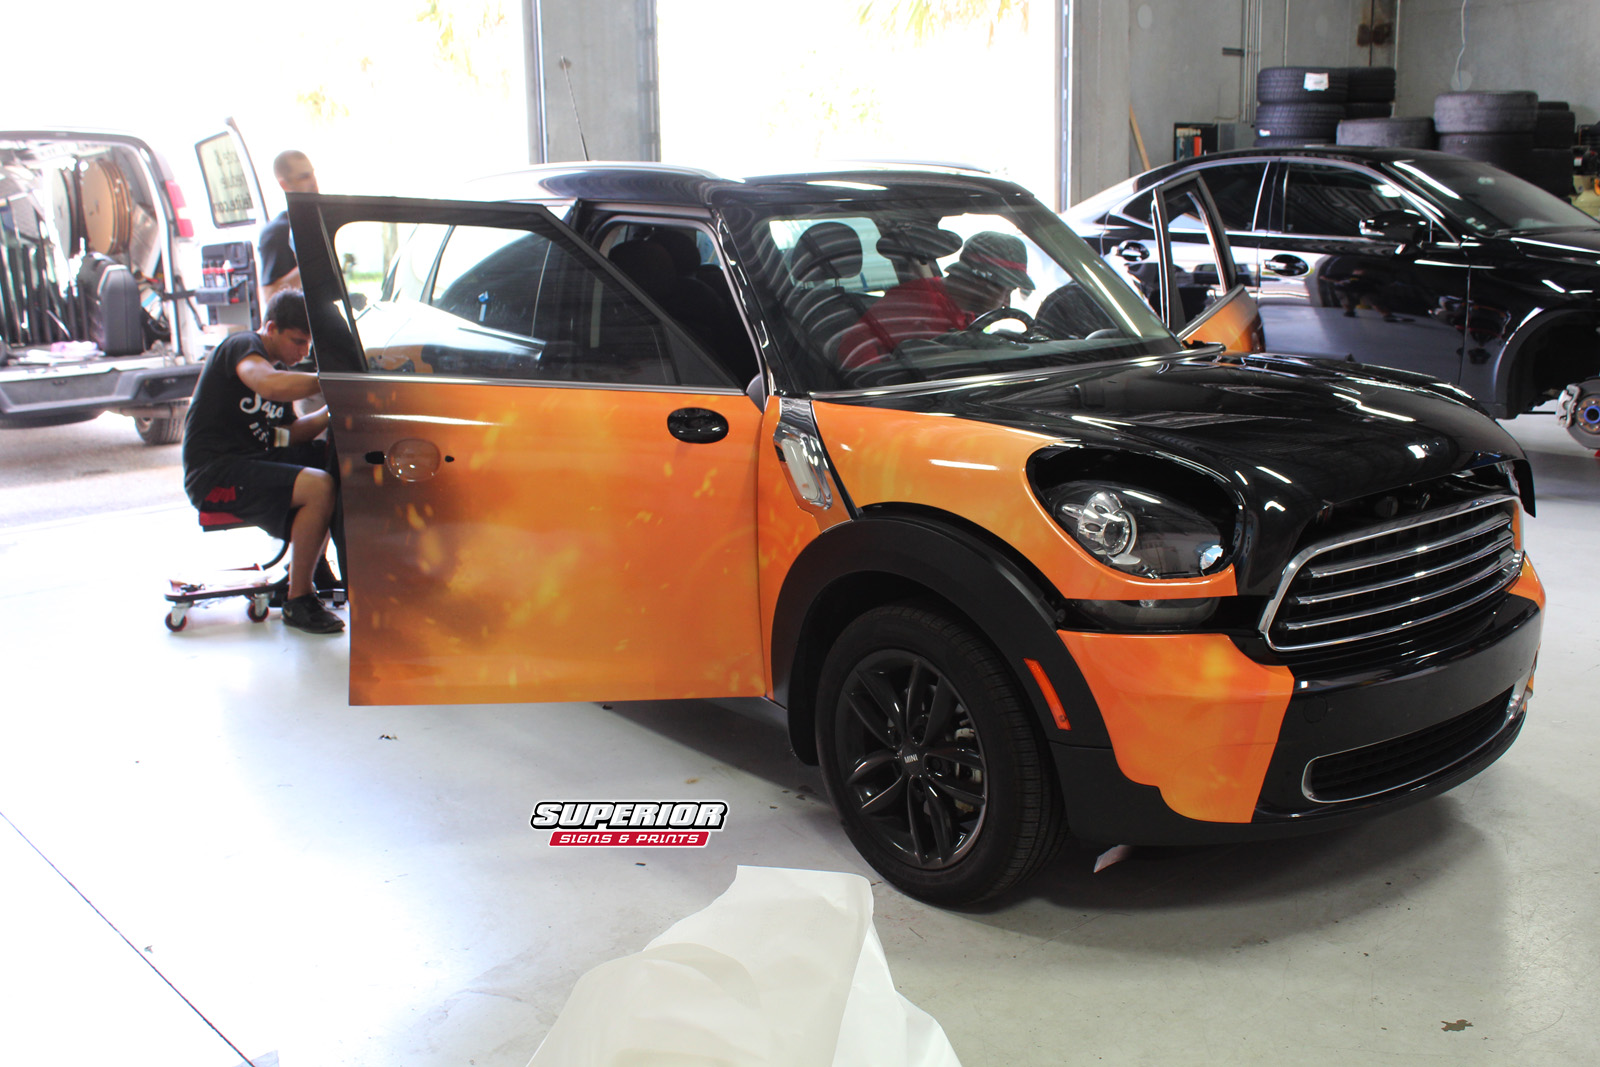 Auto Vinyl Wrap >> ORANGETHEORY FITNESS FRANCHISE OWNER MINI COOPER COMMERCIAL CAR WRAP HUNTERS CREEK AND OCALA ...